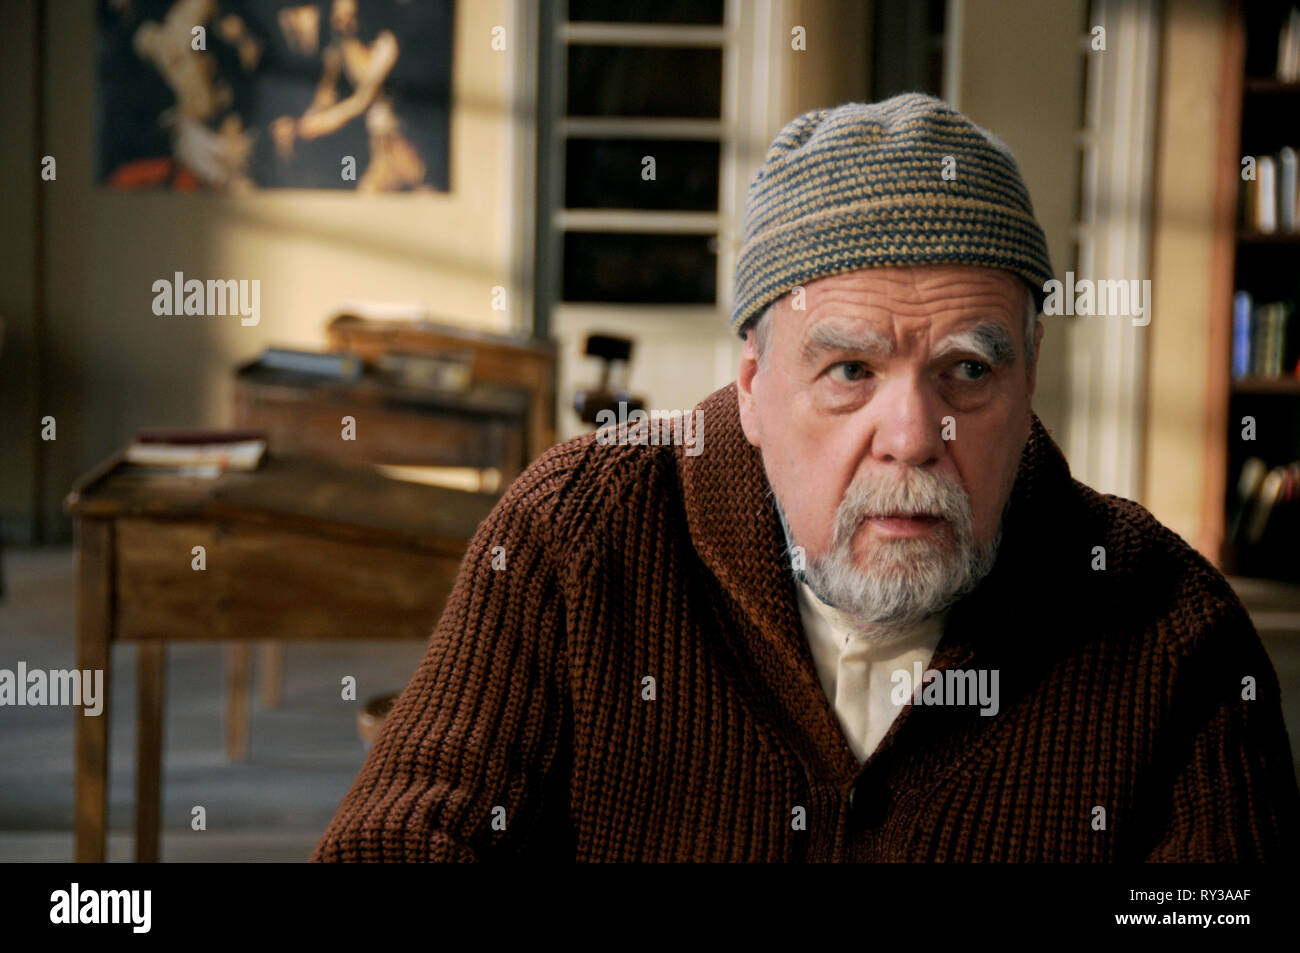 MICHAEL LONSDALE, OF GODS AND MEN, 2010 - Stock Image